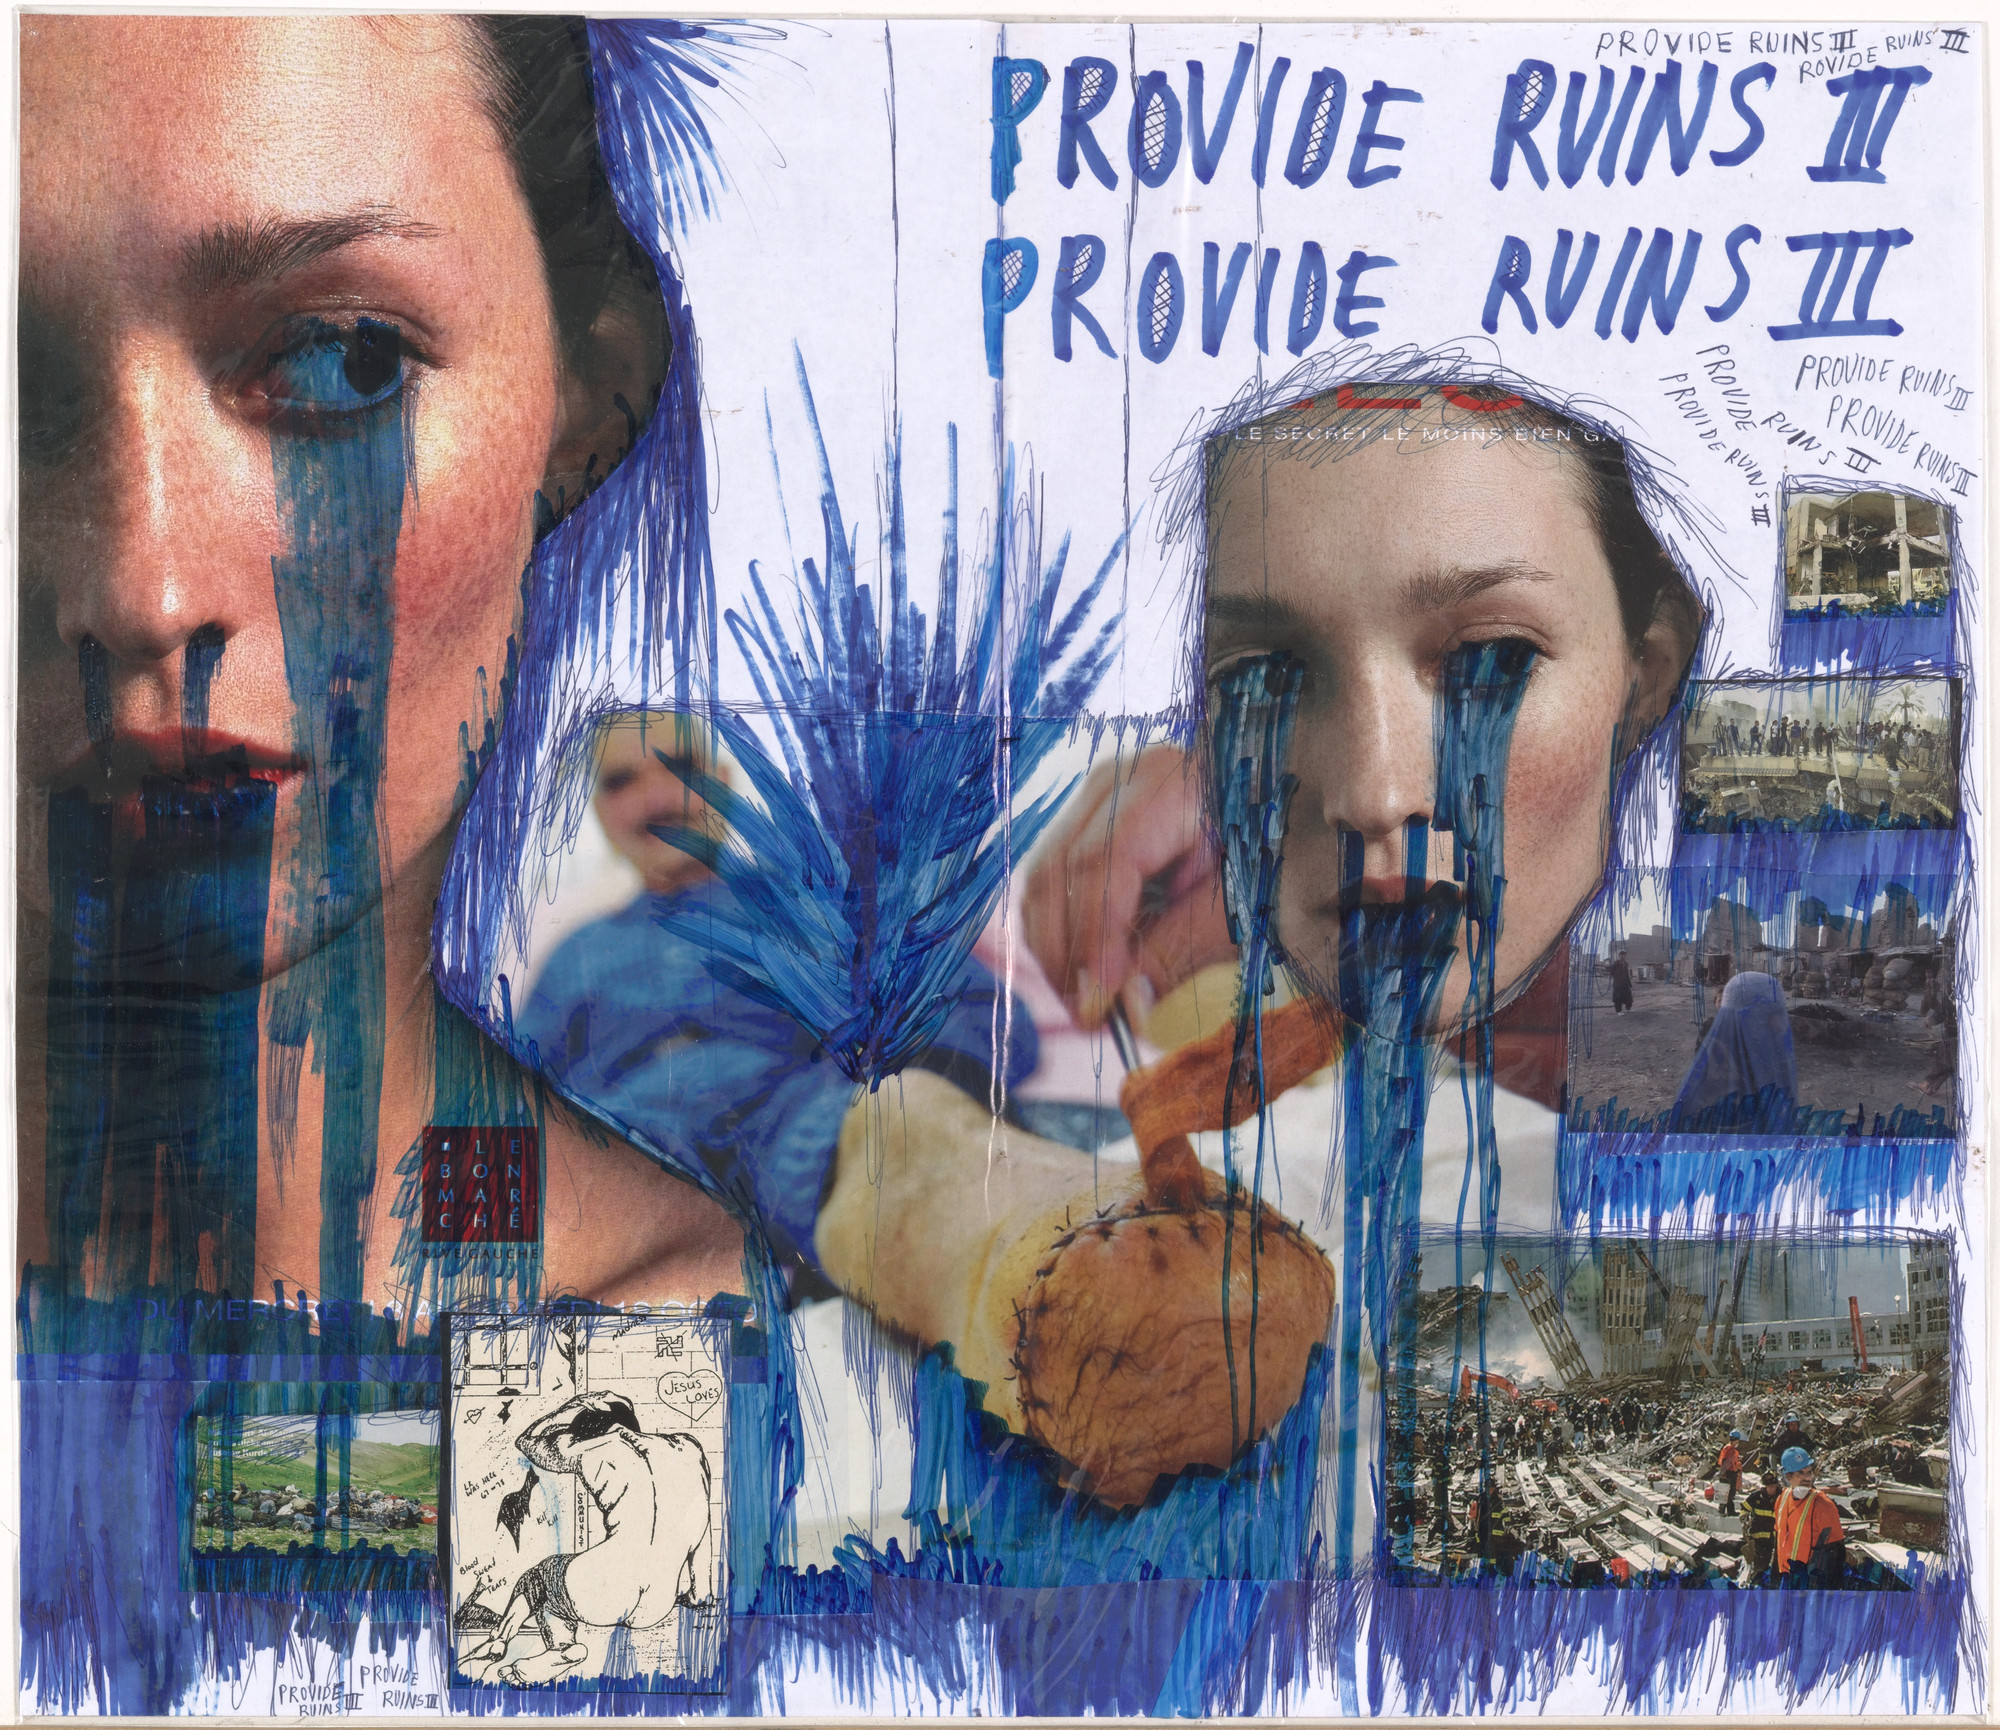 Thomas Hirschhorn. Provide Ruins III. 2003